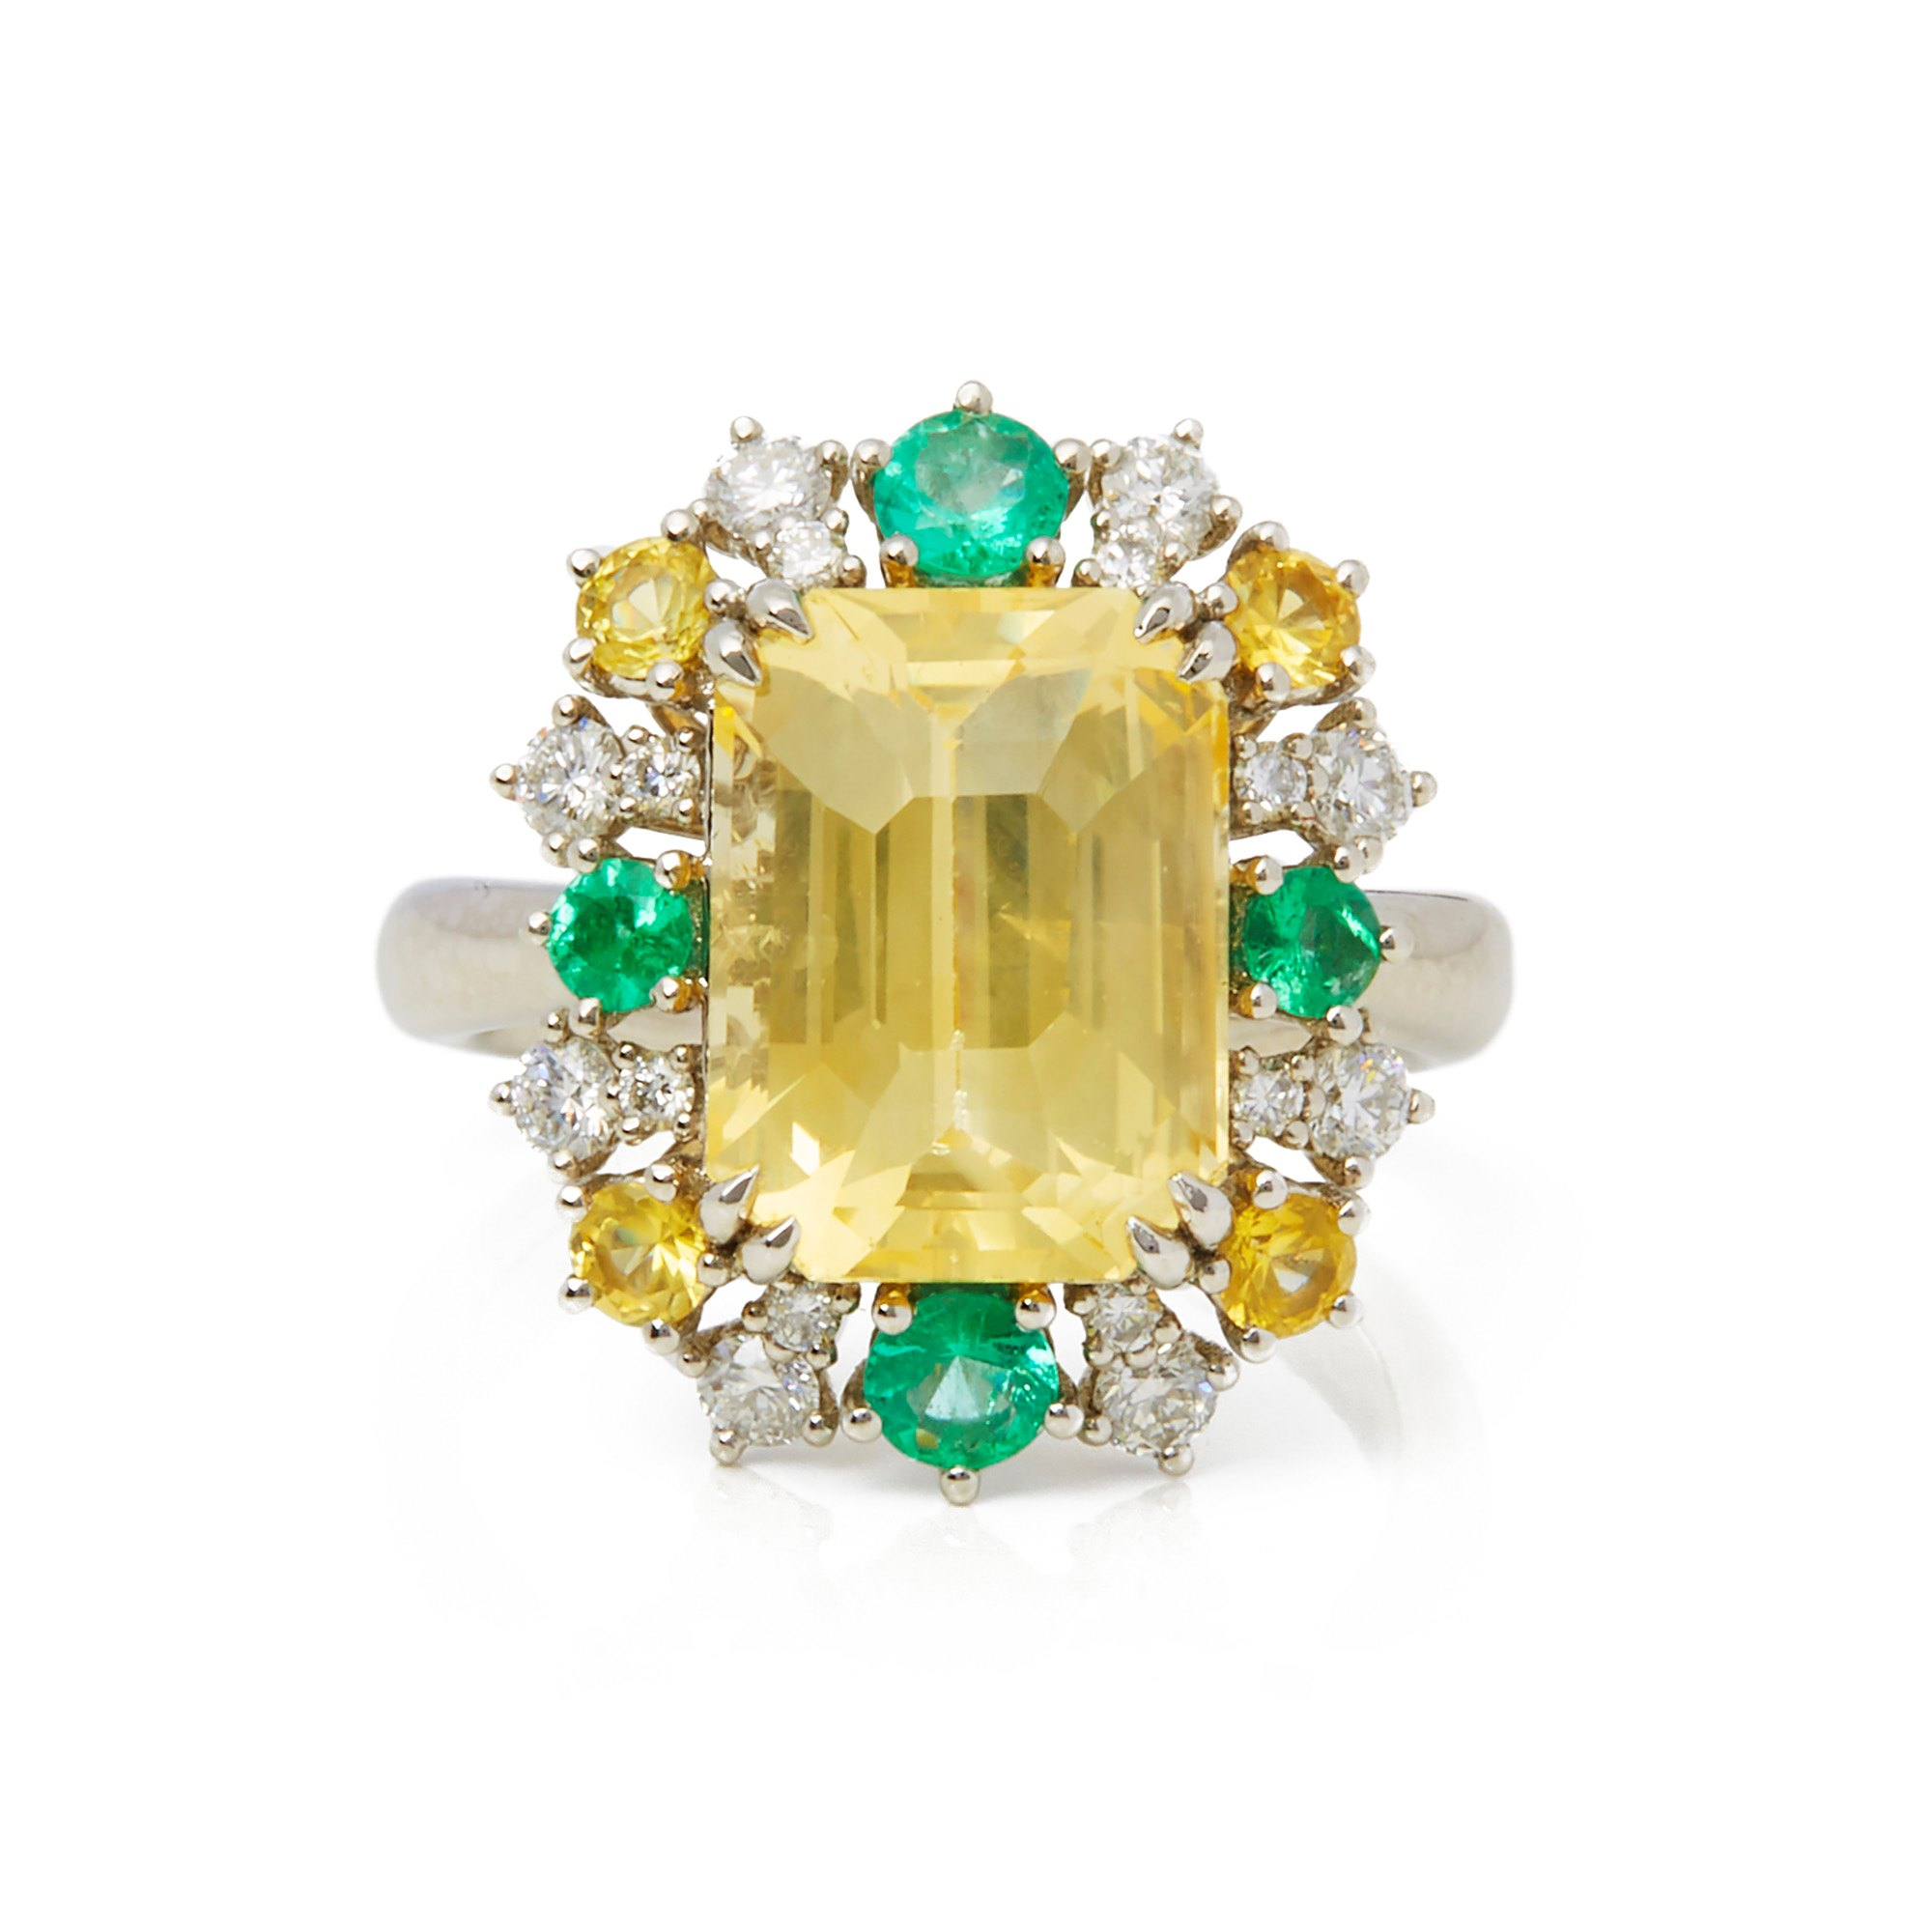 David Jerome Certified 8.08ct Untreated Emerald Cut Yellow Sapphire and Diamond Cluster Ring